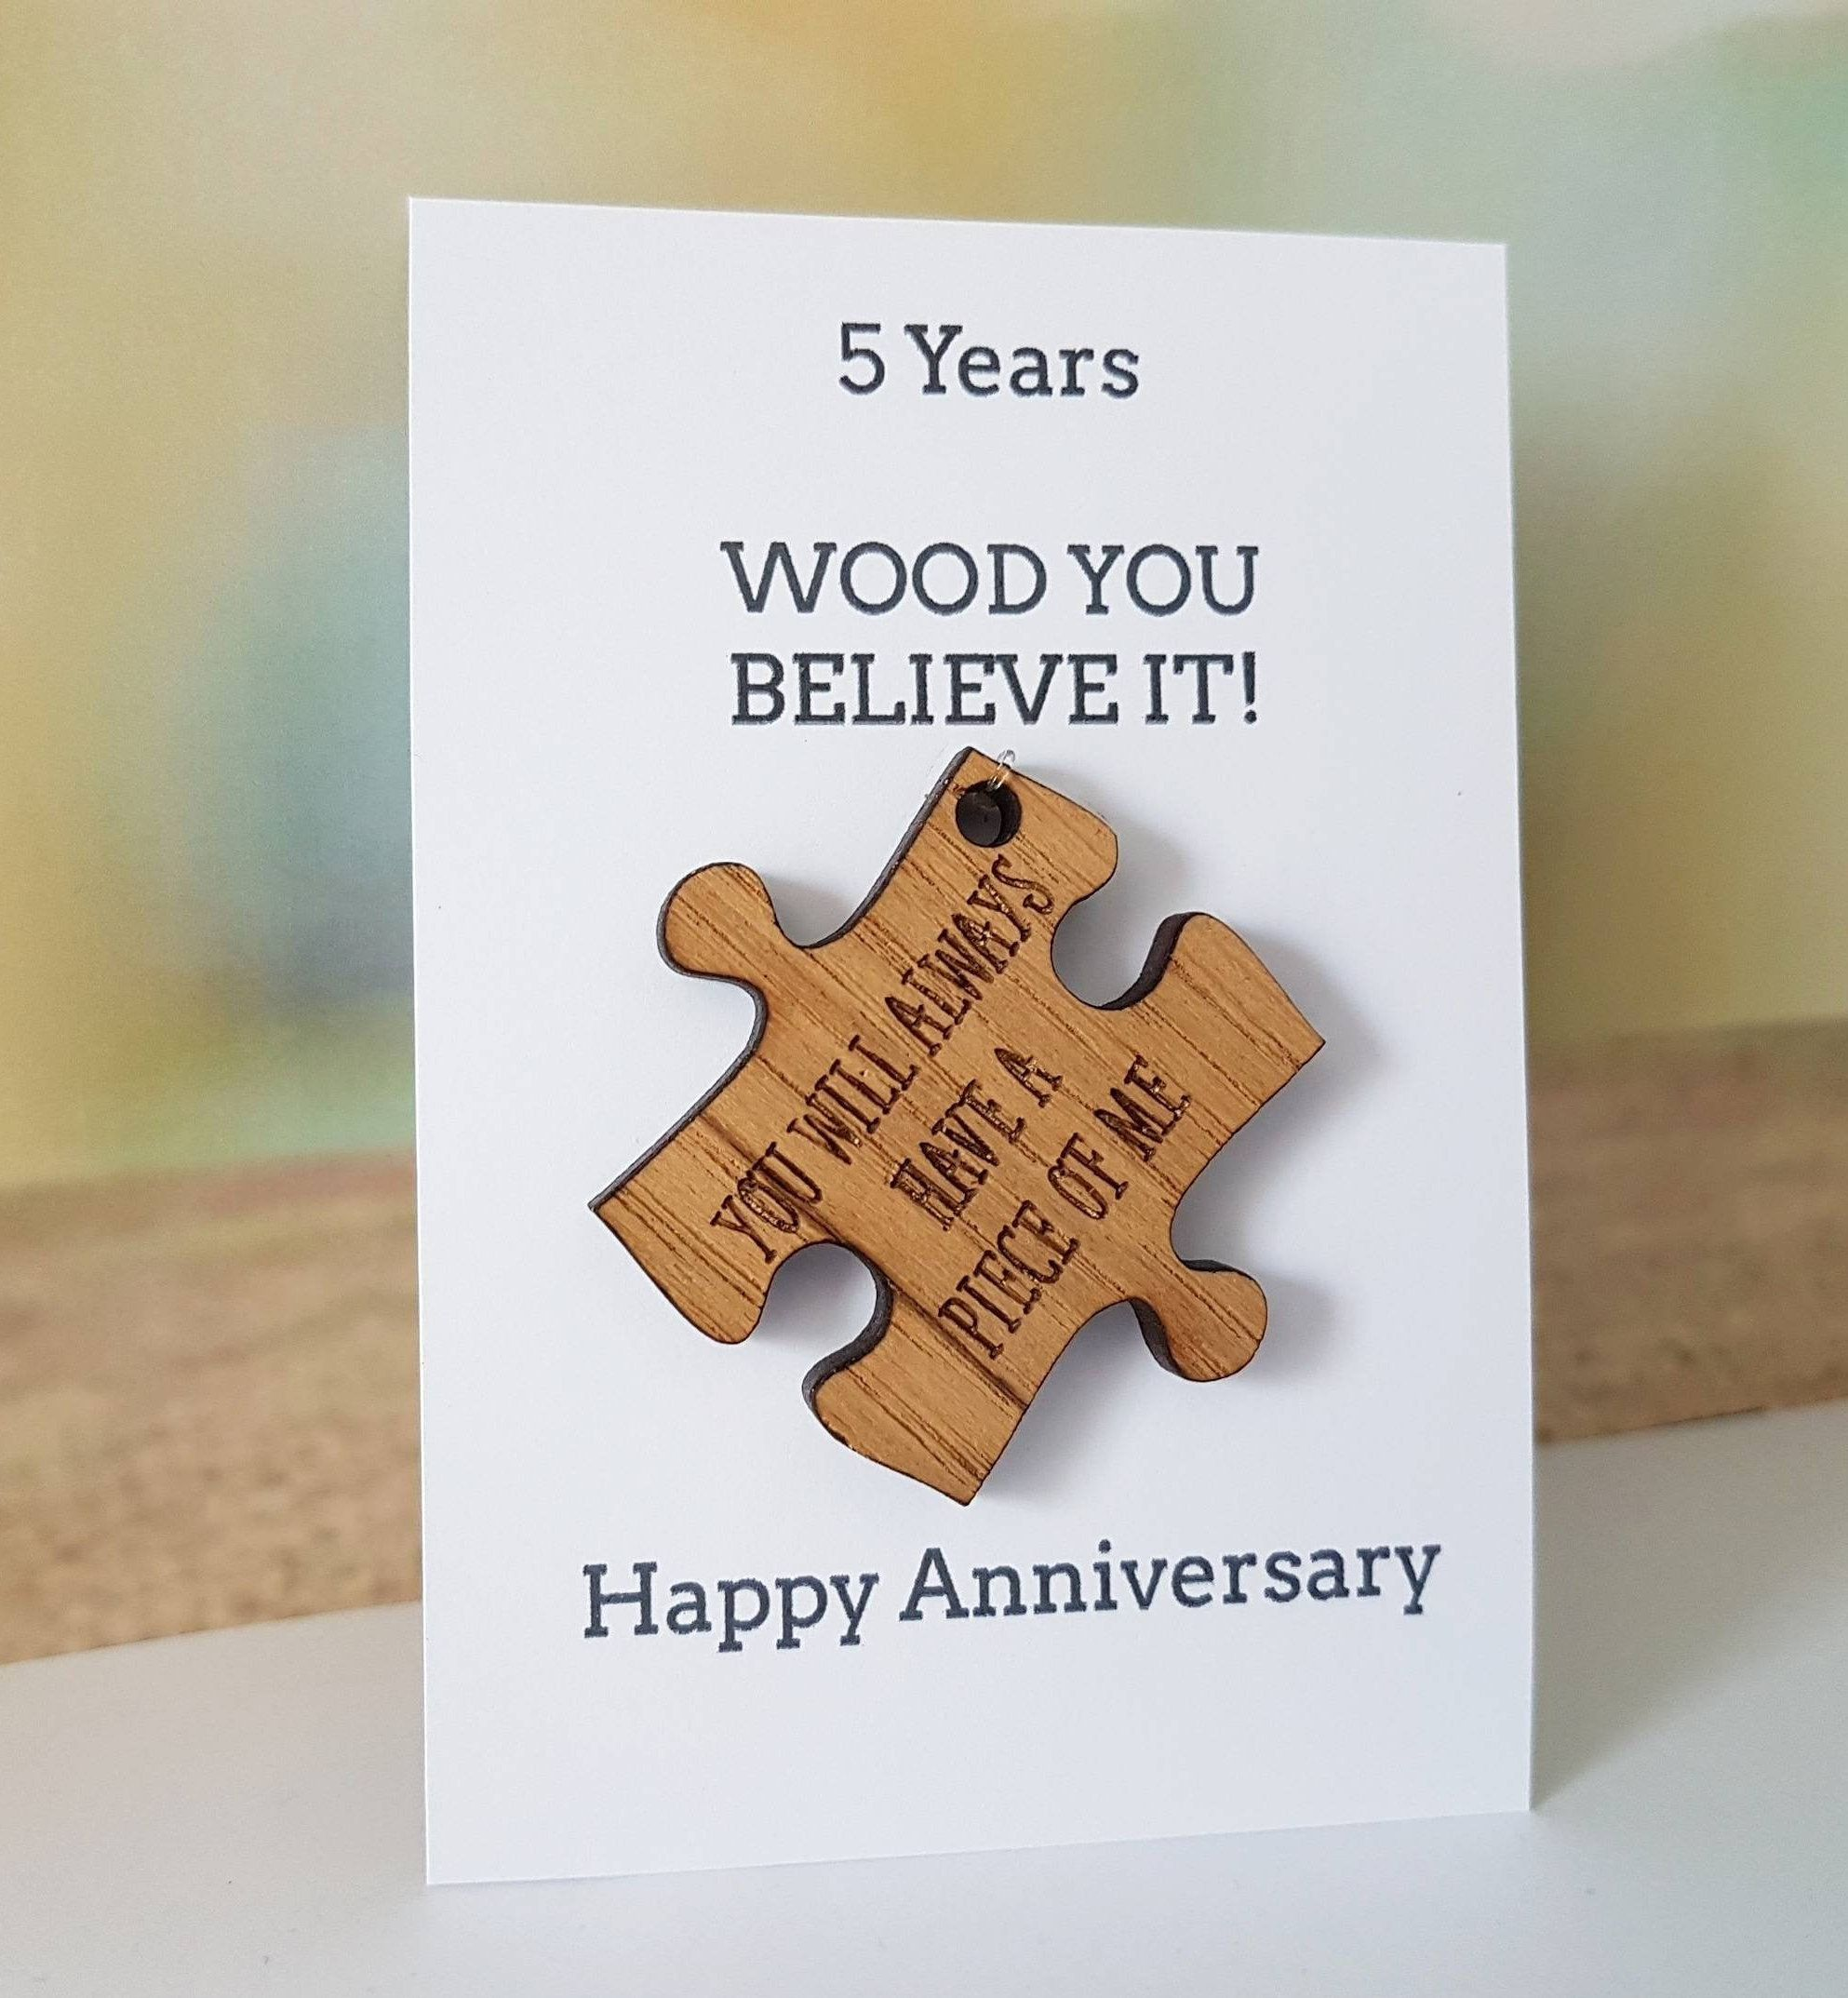 5th Anniversary Card, HusbandGift, Wife Card, Wood, Wooden